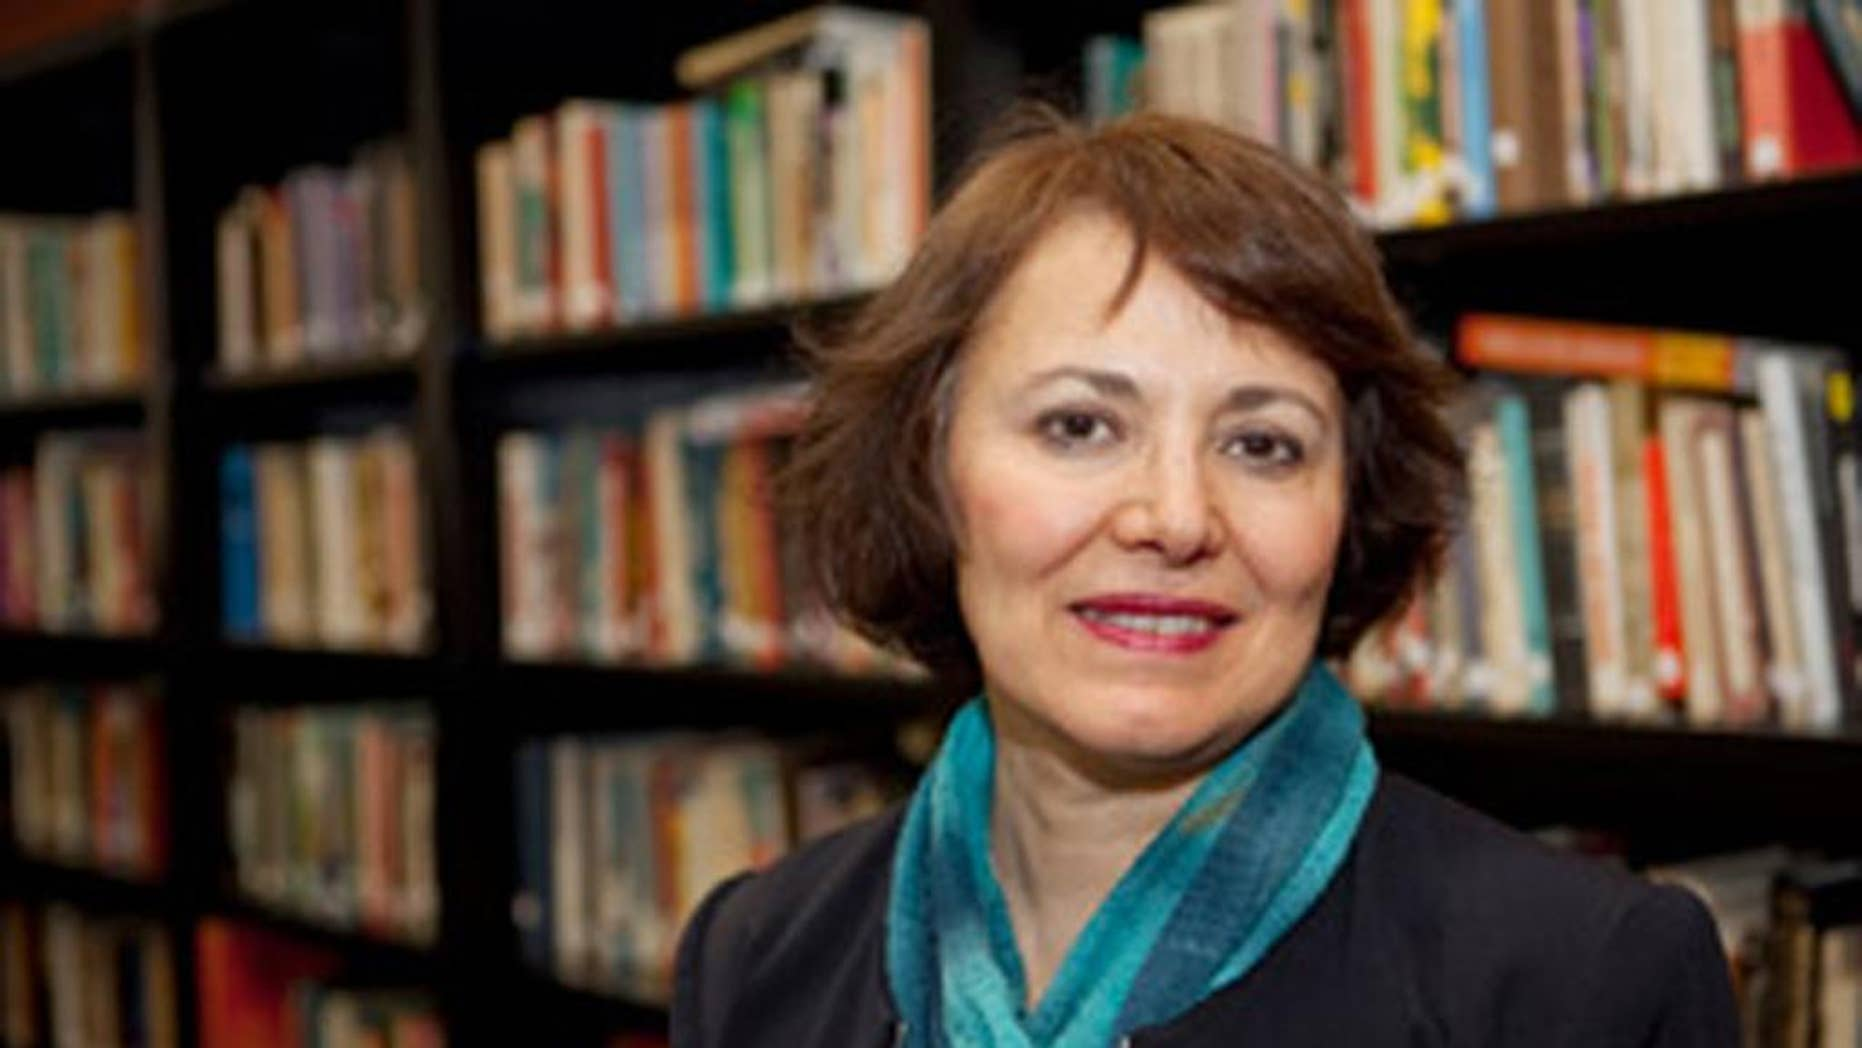 This undated photo made available by Amanda Ghahremani, shows retired Canadian-Iranian professor Homa Hoodfar. The family of Hoodfar, retired Canadian-Iranian professor who studies women's issues across the Middle East, says she has been detained in Iran without charges. Amanda Ghahremani, a niece of Homa Hoodfar says the professor reported to Evin prison on Monday for questioning and has been held incommunicado by the Iranian Revolutionary Guard since then. (Amanda Ghahremani via AP)